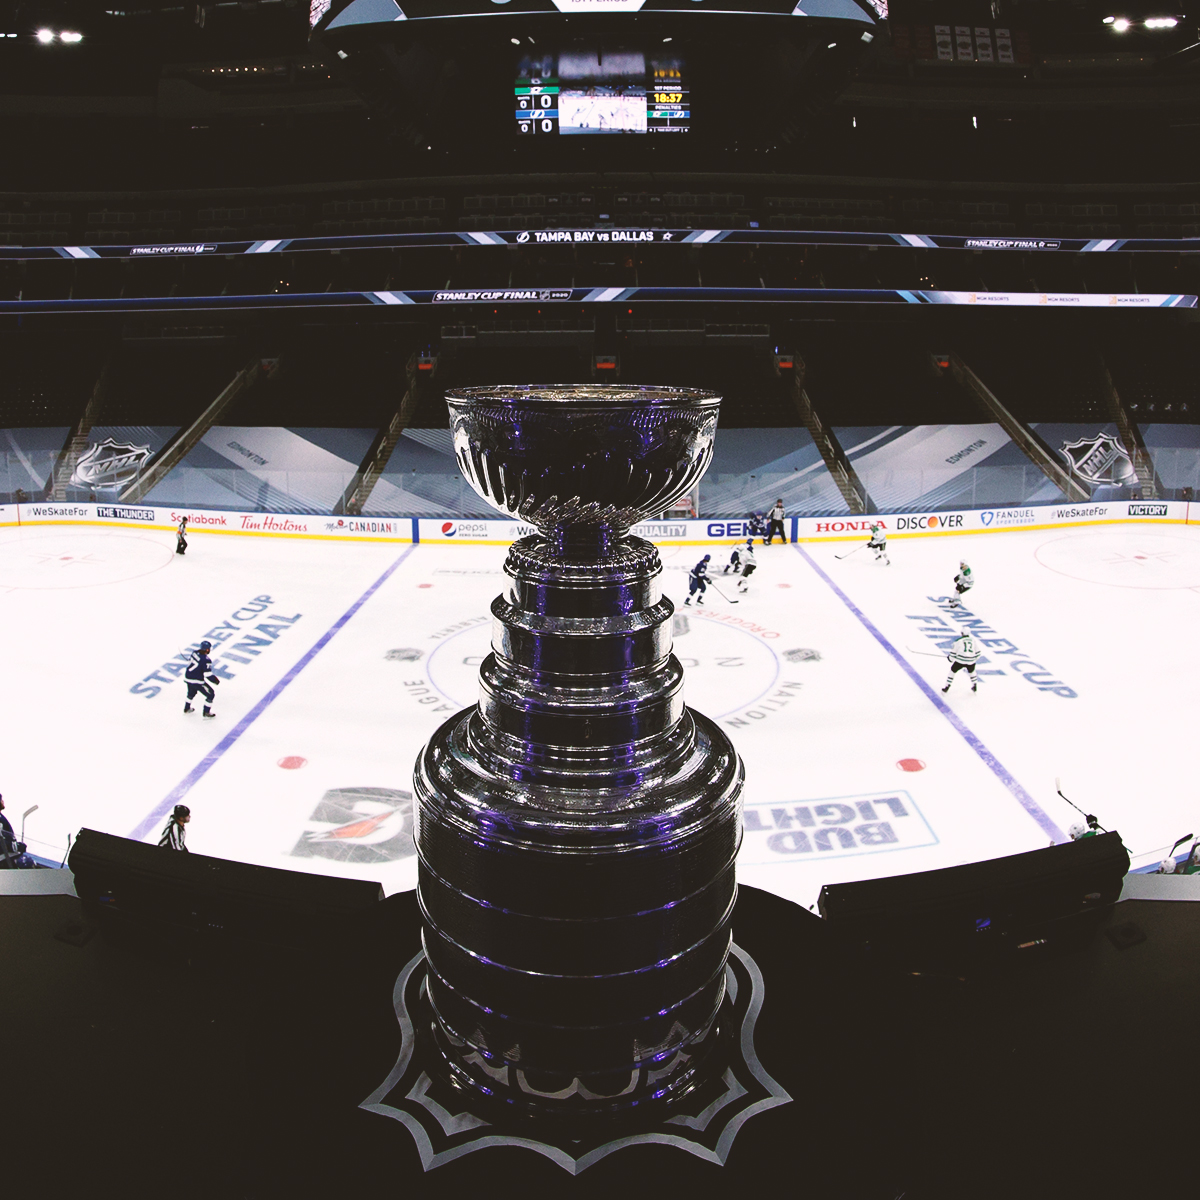 @NHLonNBCSports's photo on #StanleyCup